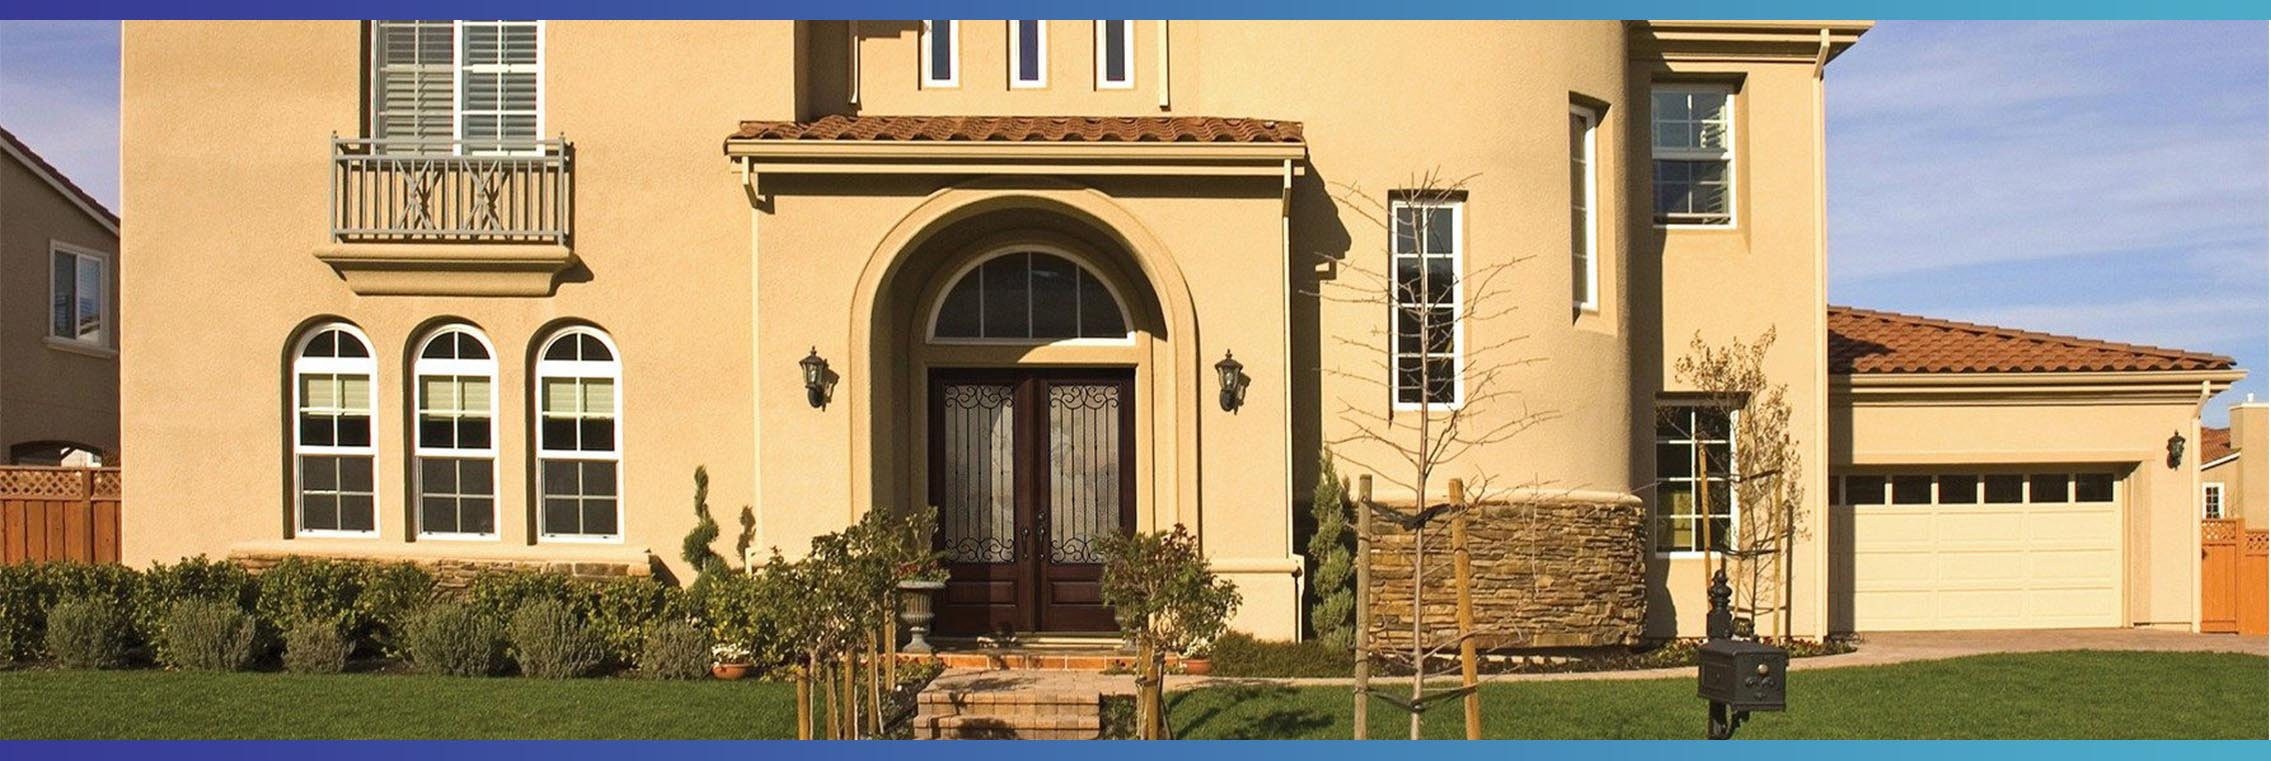 Header image - vinyl windows for my home in Phoenix AZ